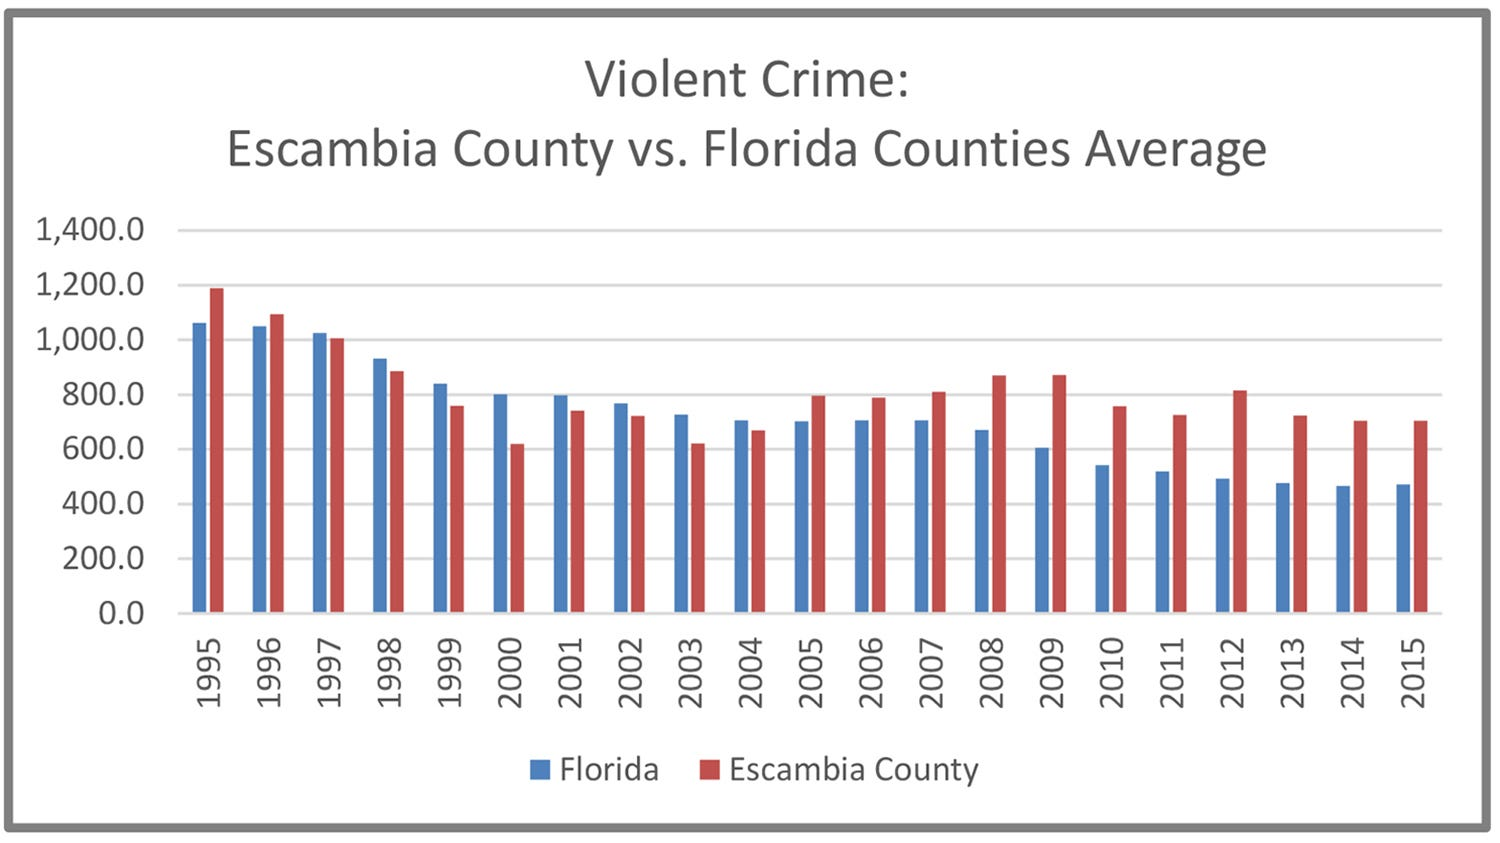 why is the crime rate higher Only cities and towns above the median population of 9,549 were included, as lower population areas can skew rates higher only municipalities that provided data to the fbi were included for example, there was no data for atlantic city in some locations, seasonal influxes can affect crime rates.